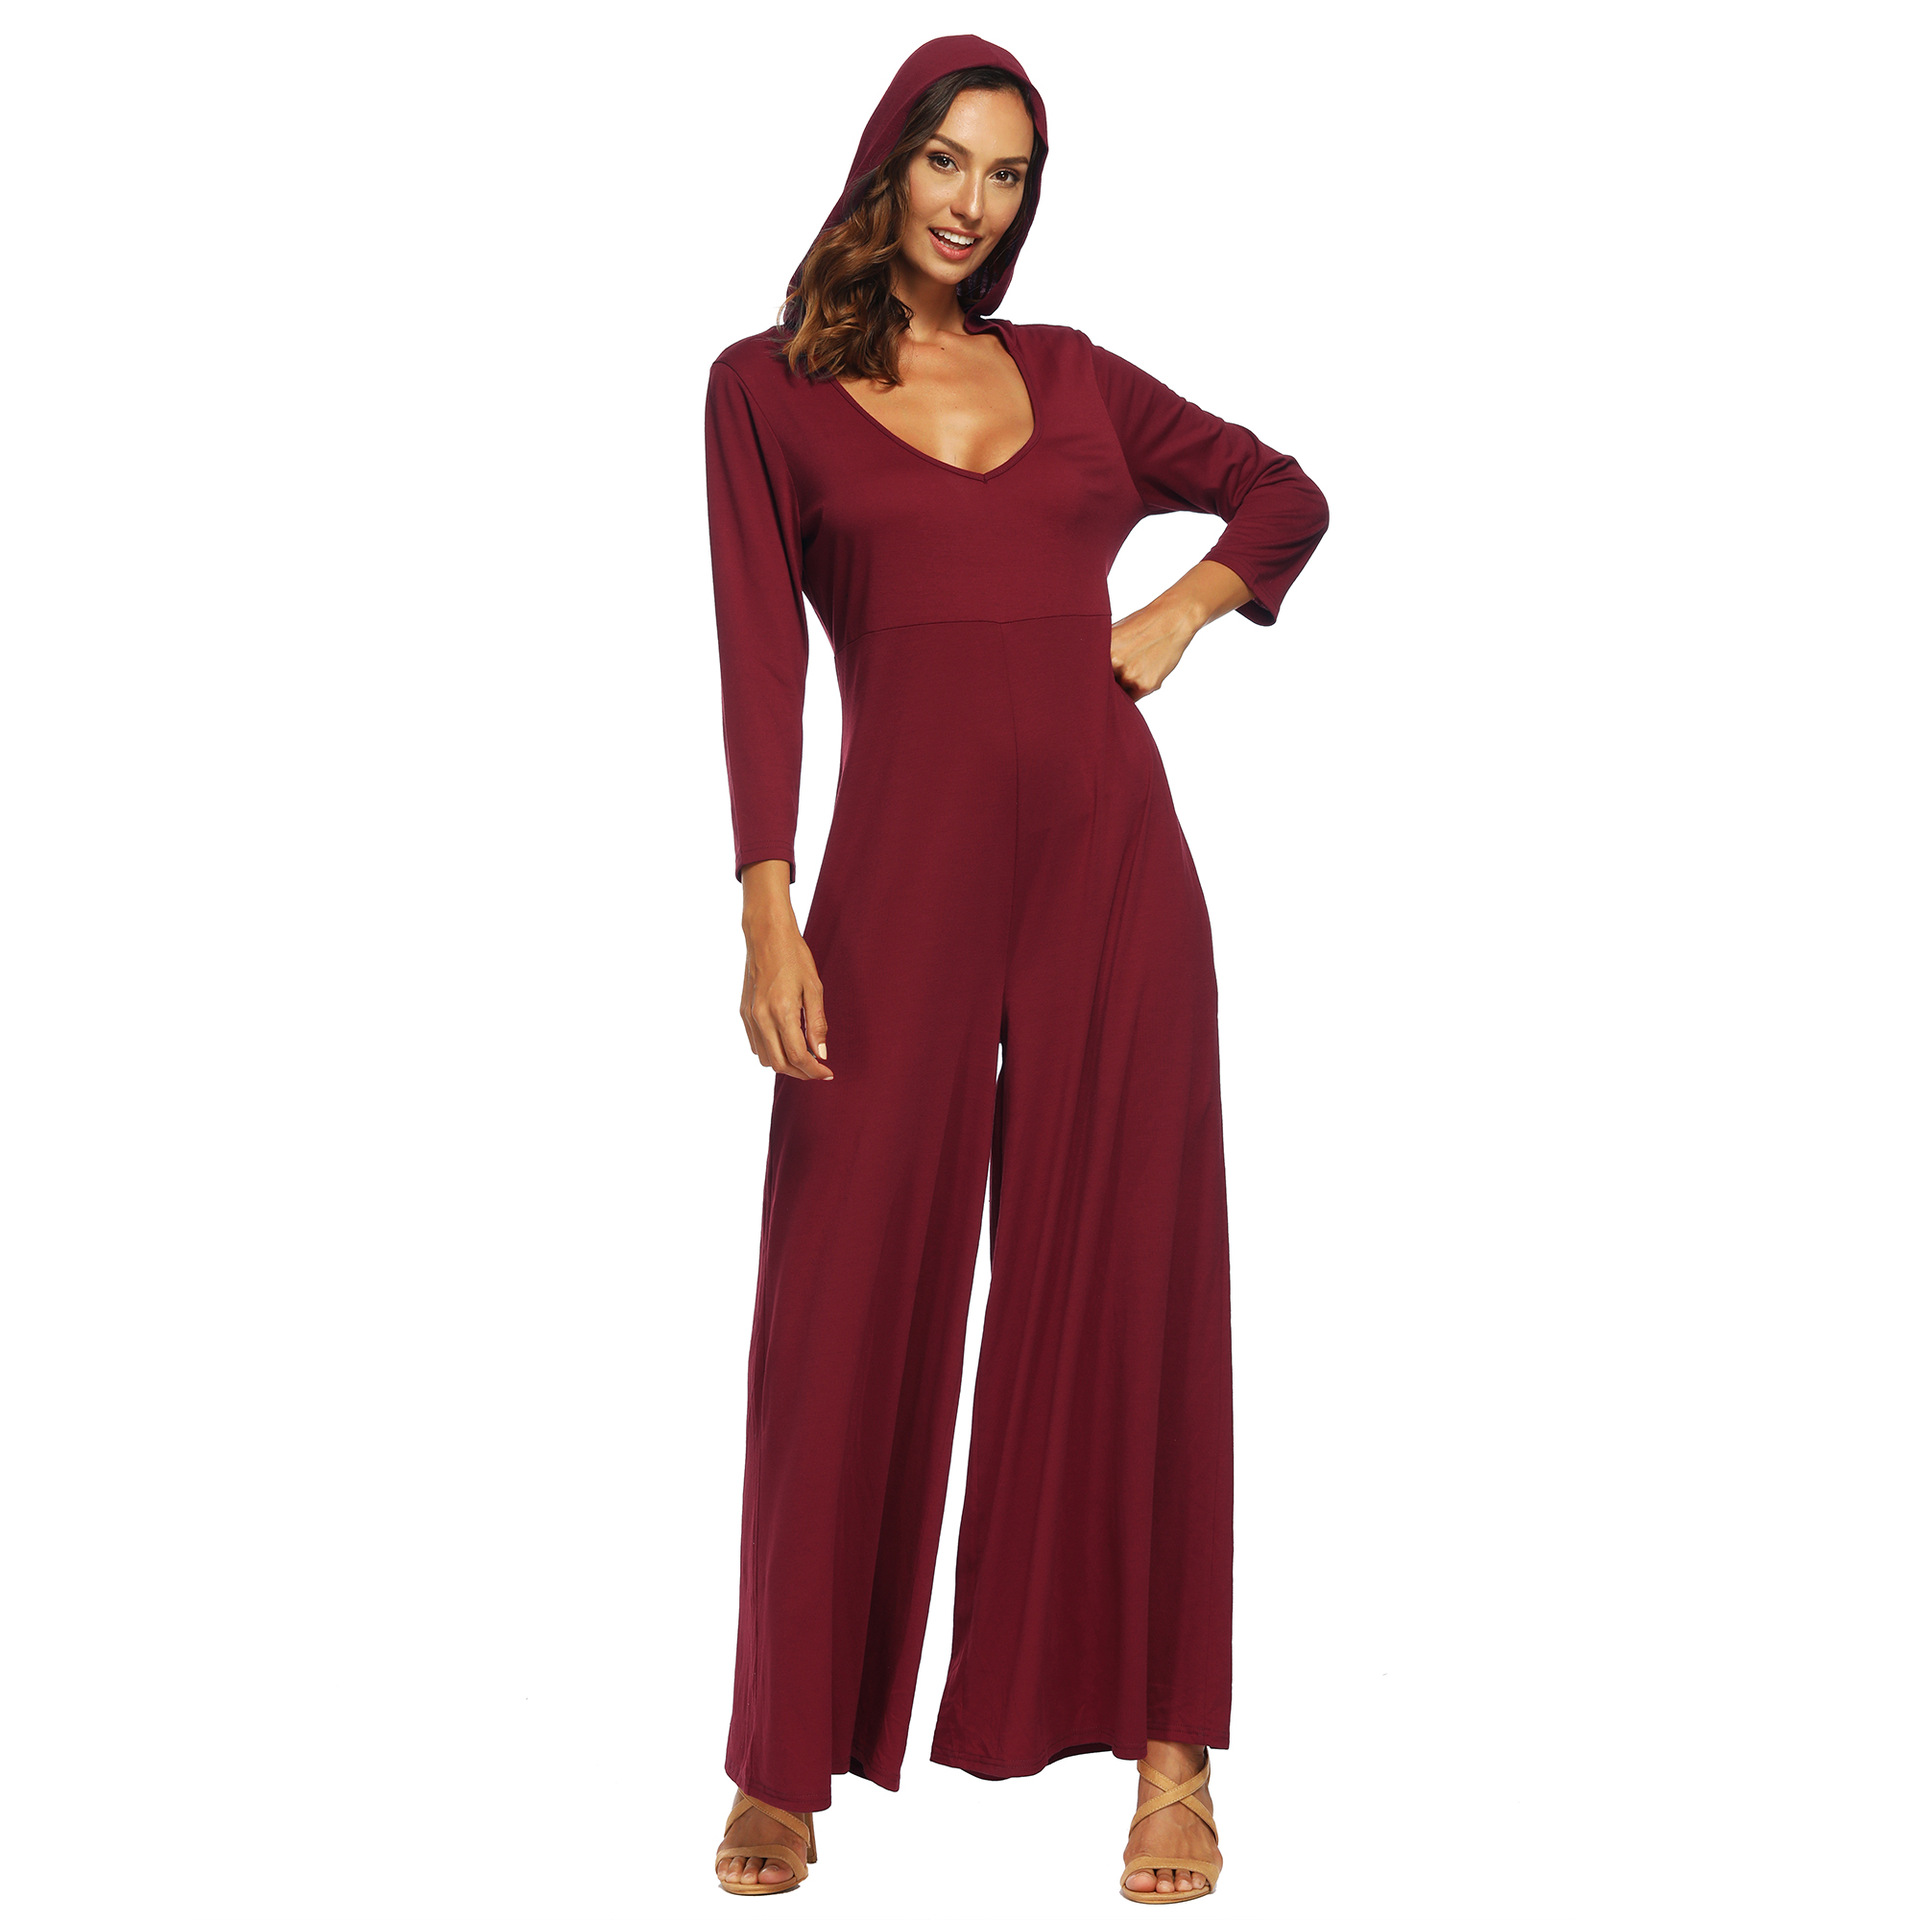 a27a4820a770 2019 2019 New Deep V Neck Hooded Rompers Womens Jumpsuit Casual ...